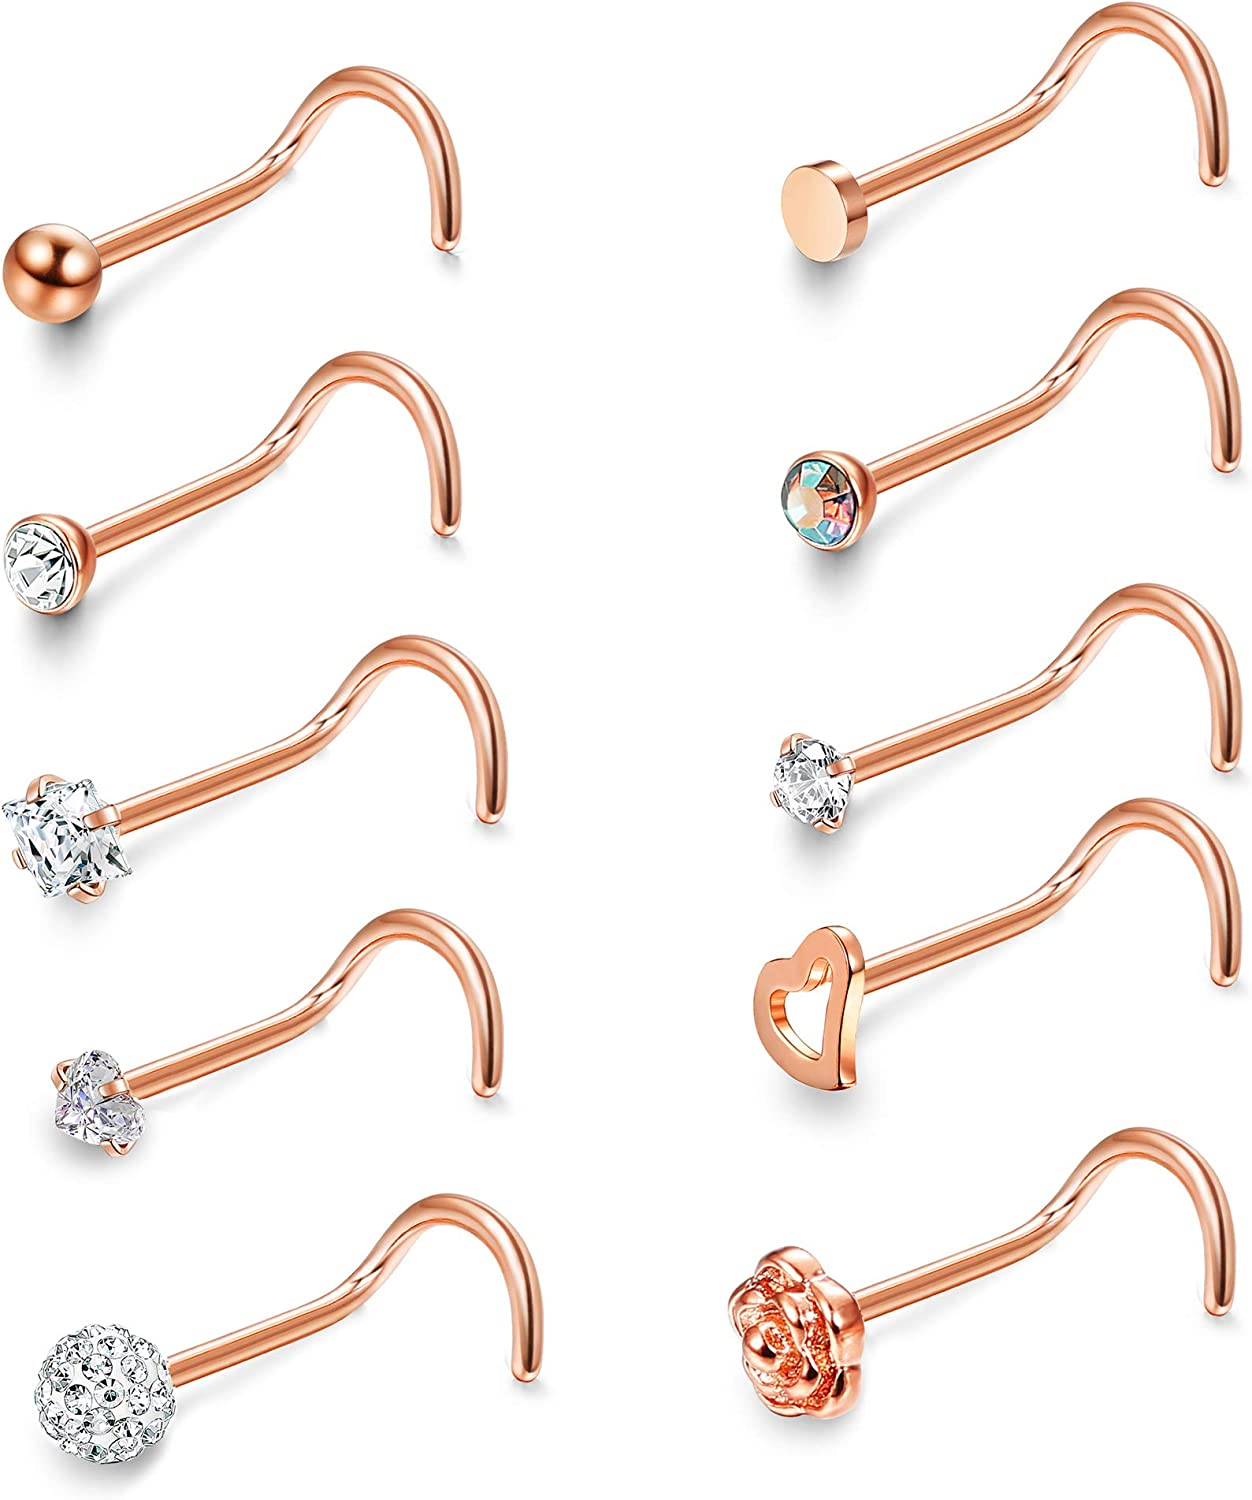 Lot of 10  Ball Top Nose Ring Stainless Steel 20 Gauge 8mm Long Ships from US